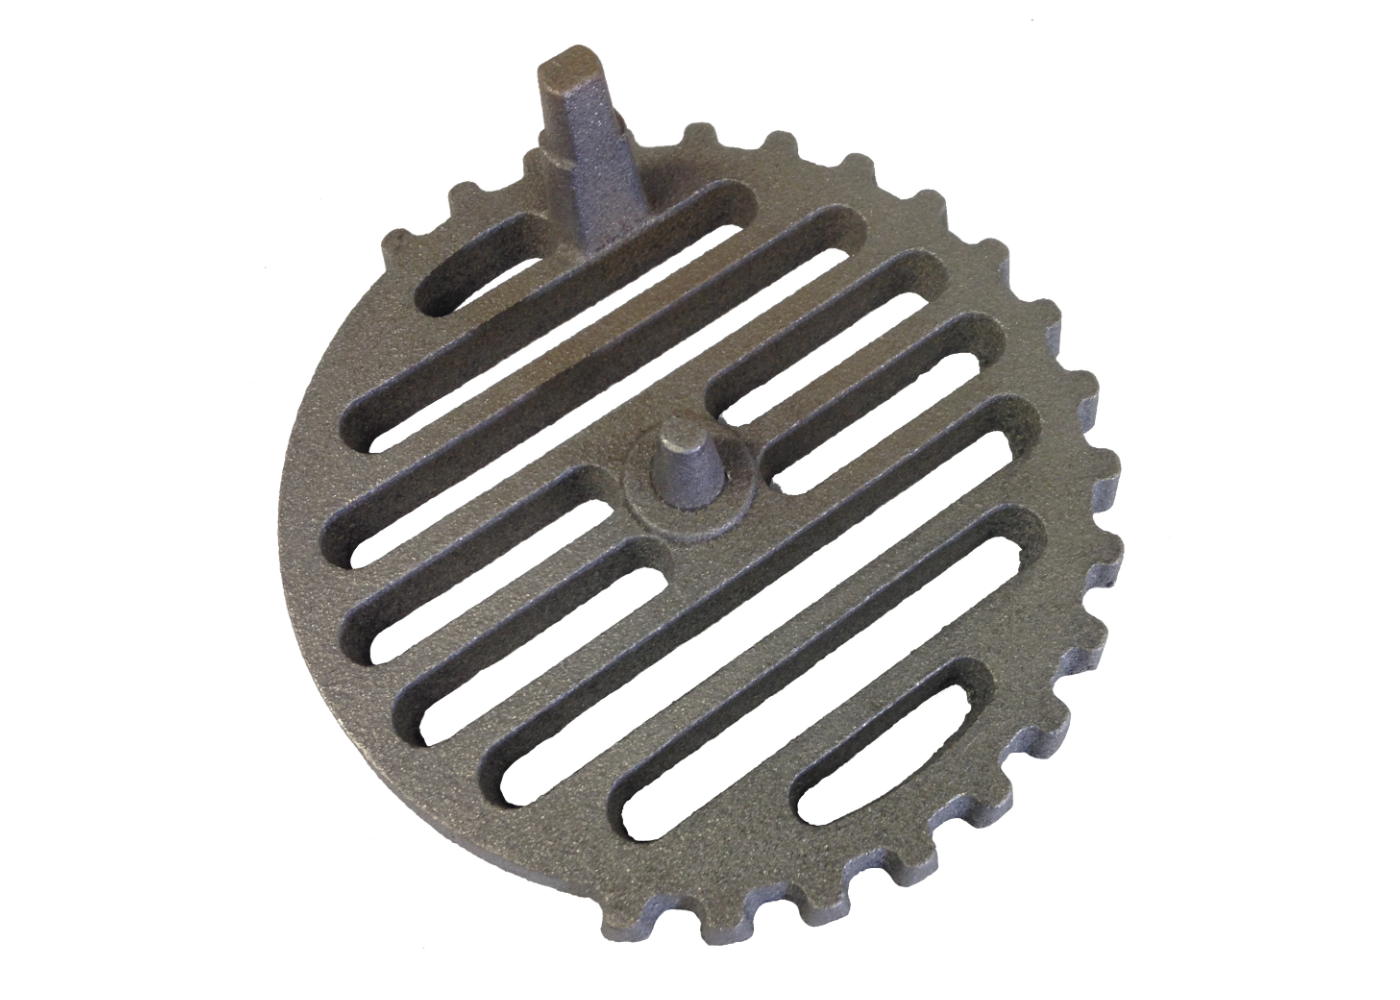 A replacement Grate suitable for Franco Belge Montfort stoves.